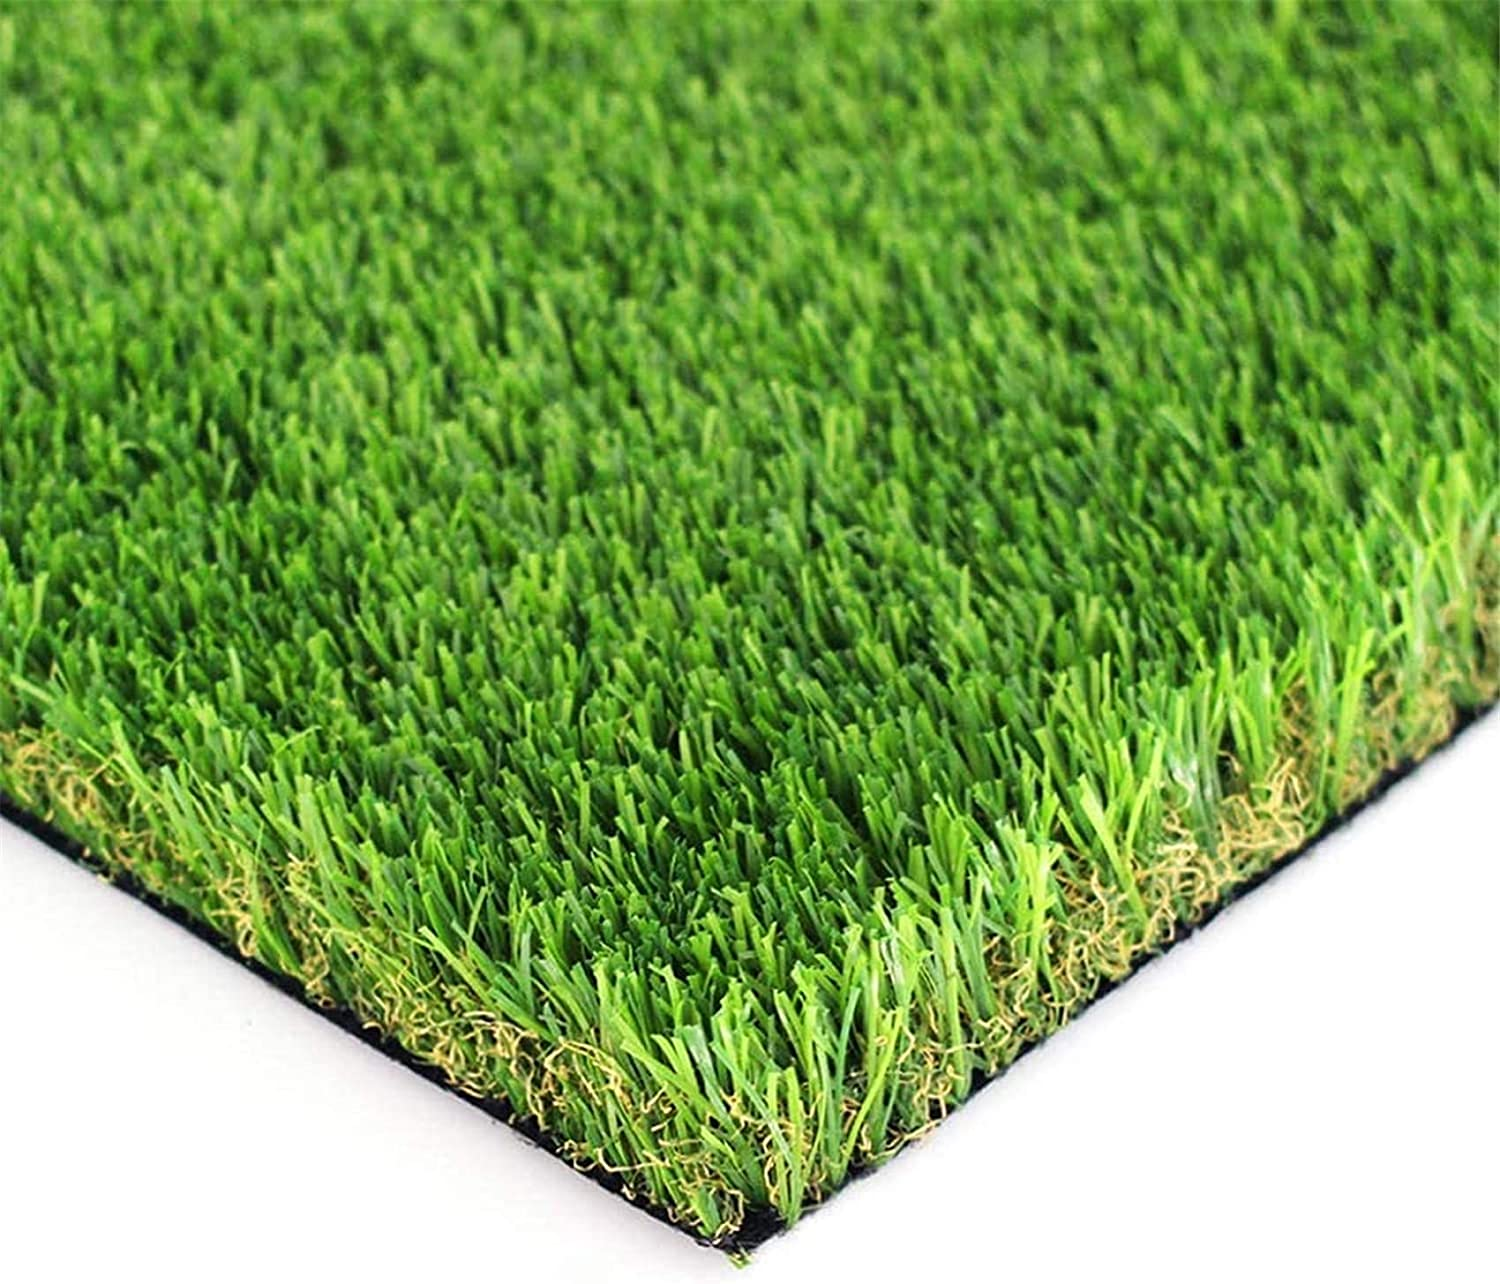 Quality Artificial Grass Astro Turf Garden Lawn Realistic Budget Grass CHEAPEST